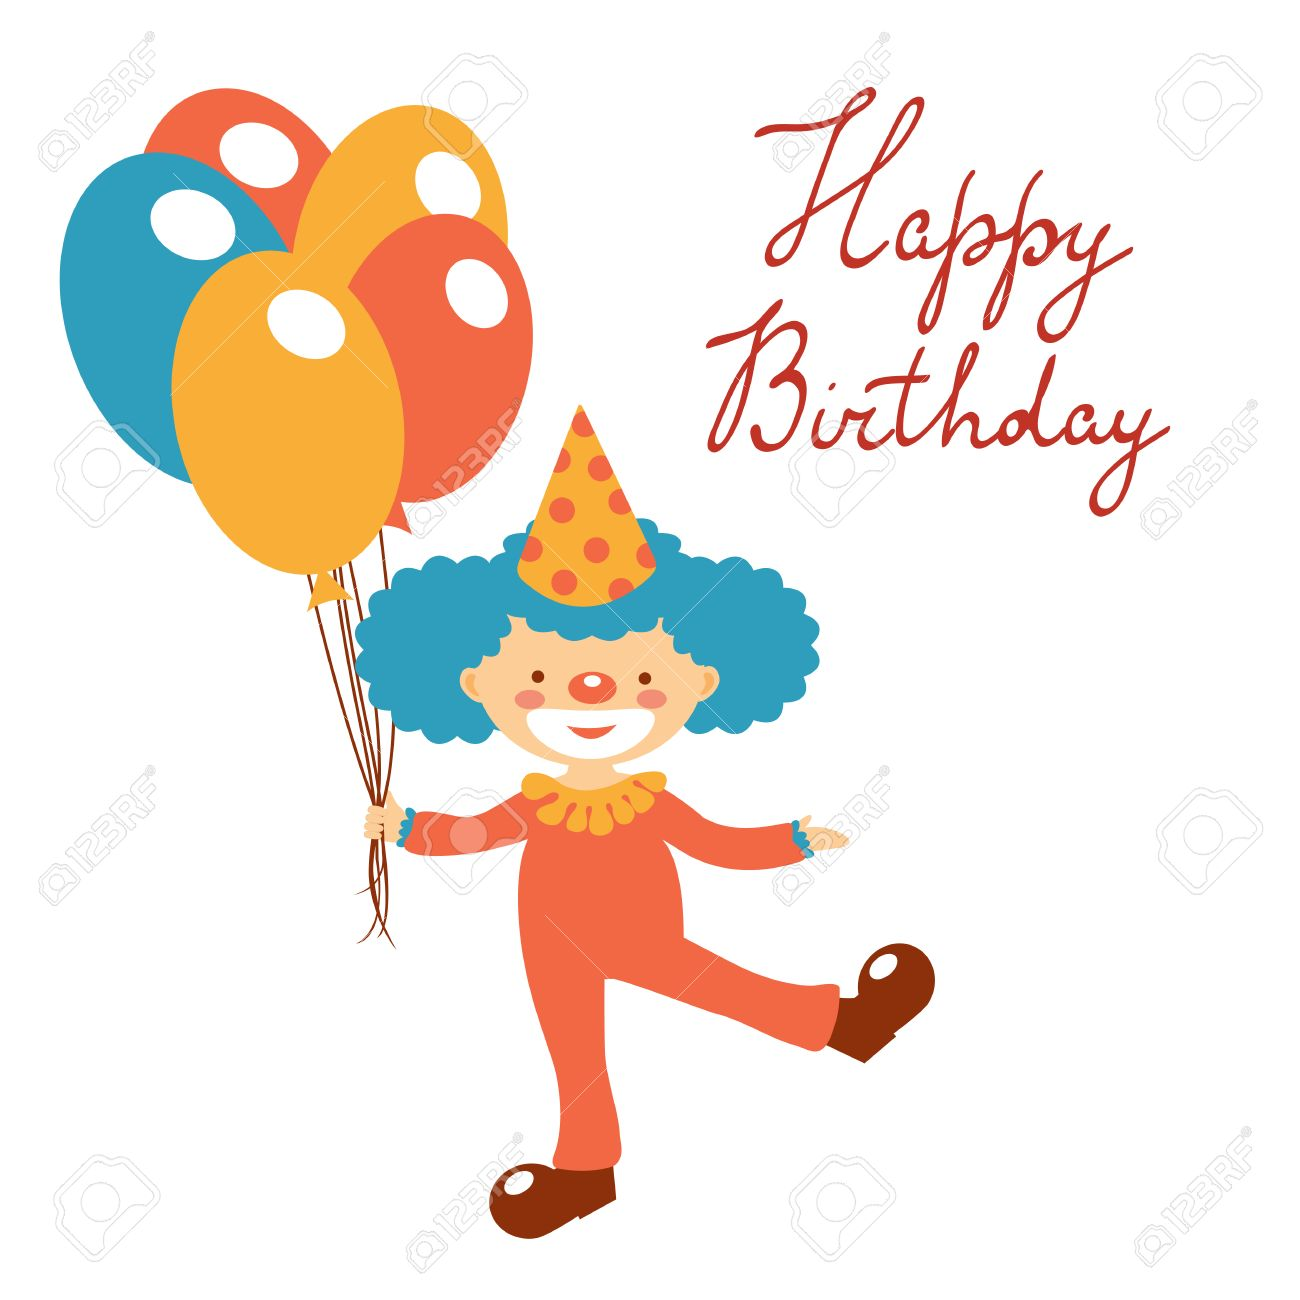 Stylish Happy Birthday Card With Cute Clown Holding Balloons – Birthday Card Format